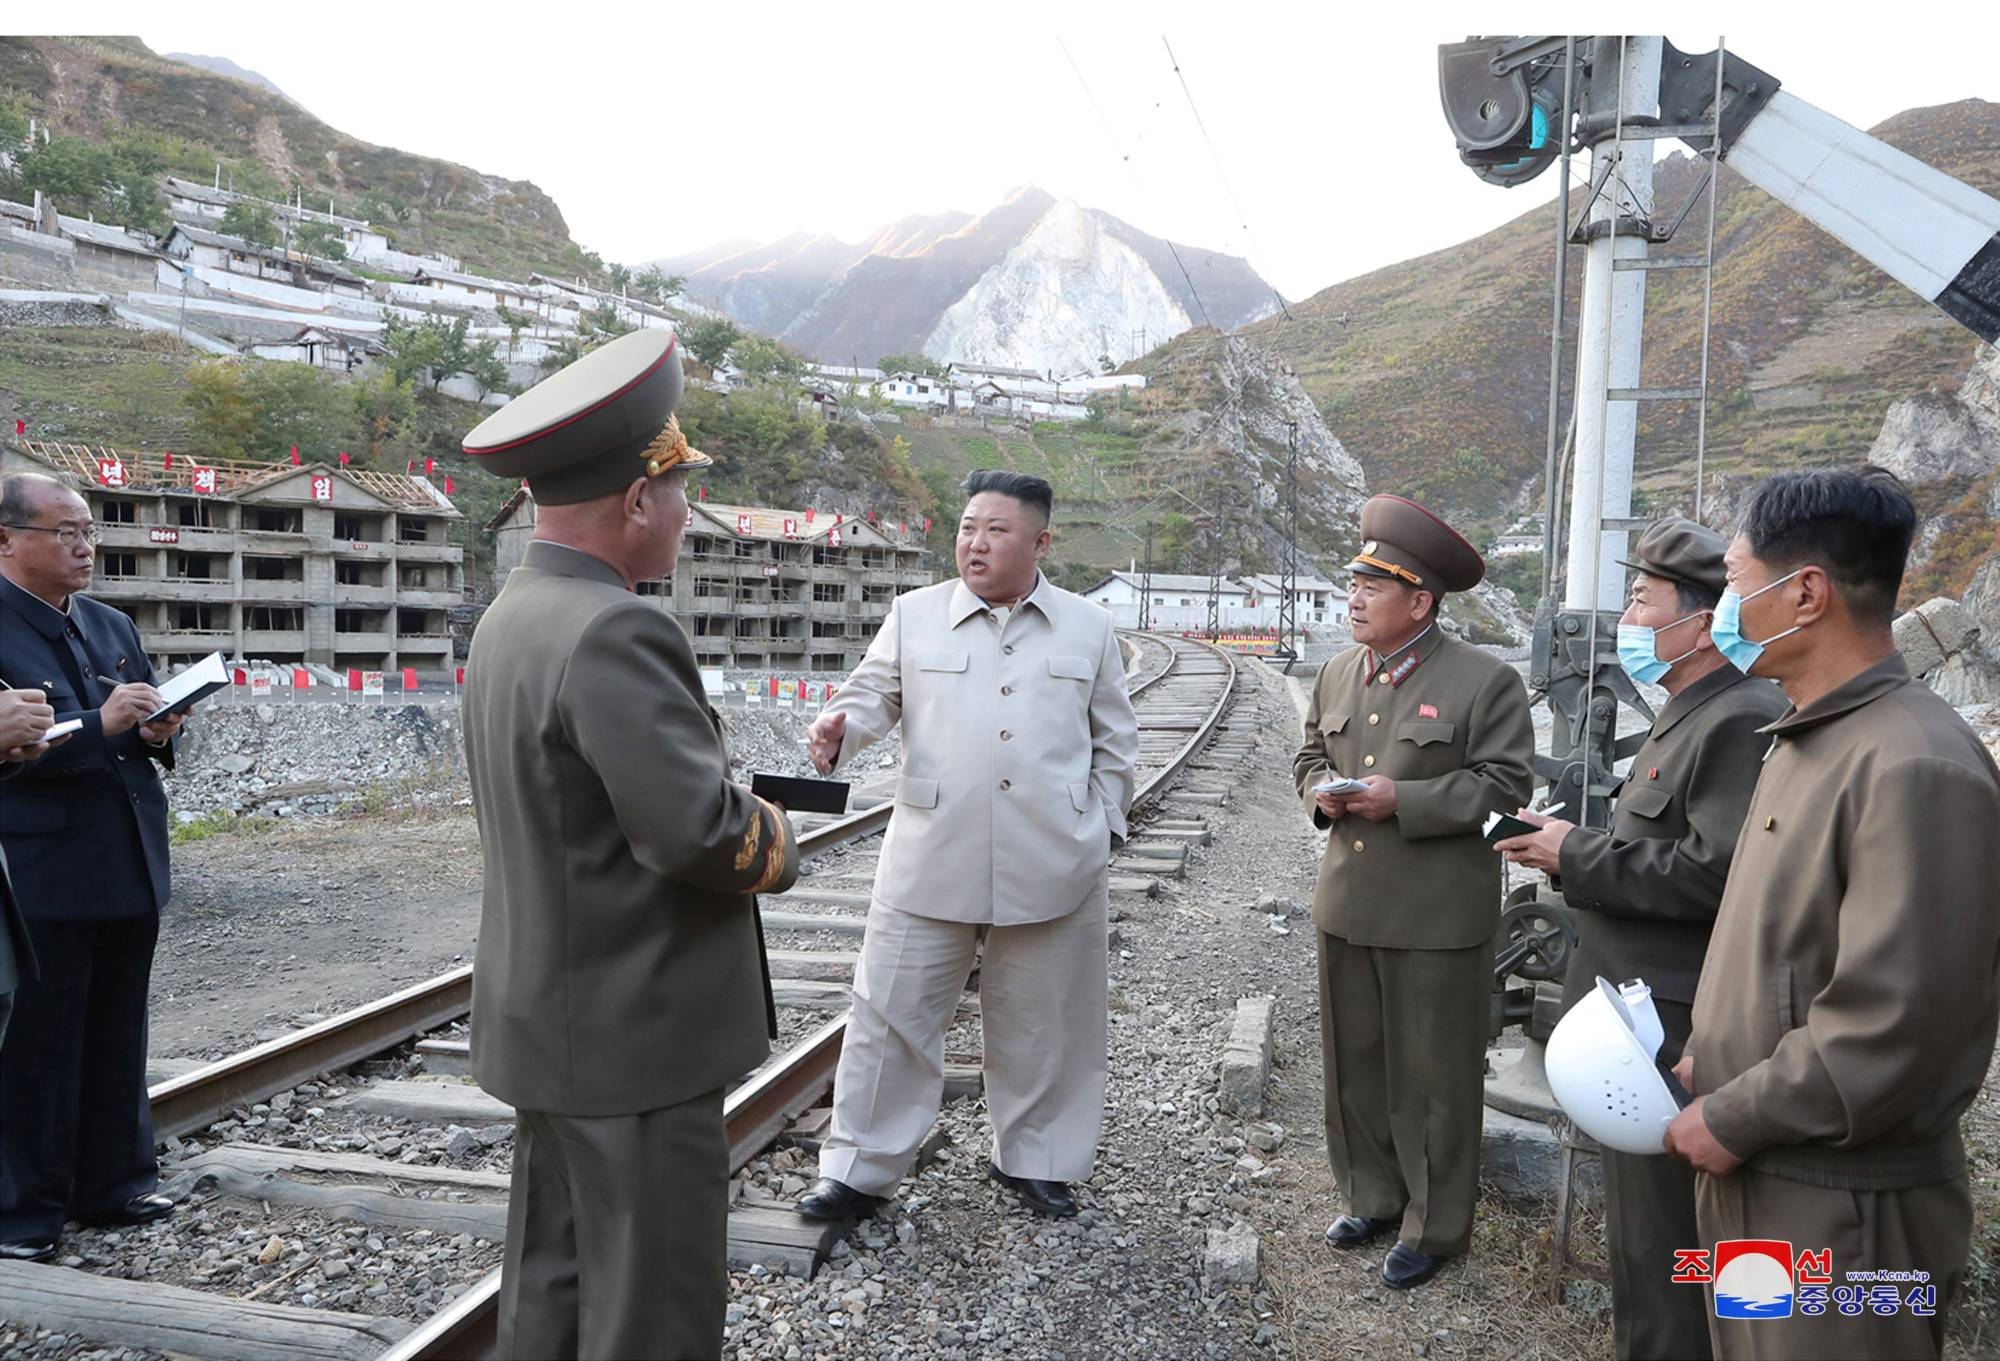 North Korean leader Kim Jong Un inspects a damage recovery site affected by heavy rains and winds caused by recent typhoons in South Hamgyong province in a photo released Tuesday.  | KCNA / VIA REUTERS